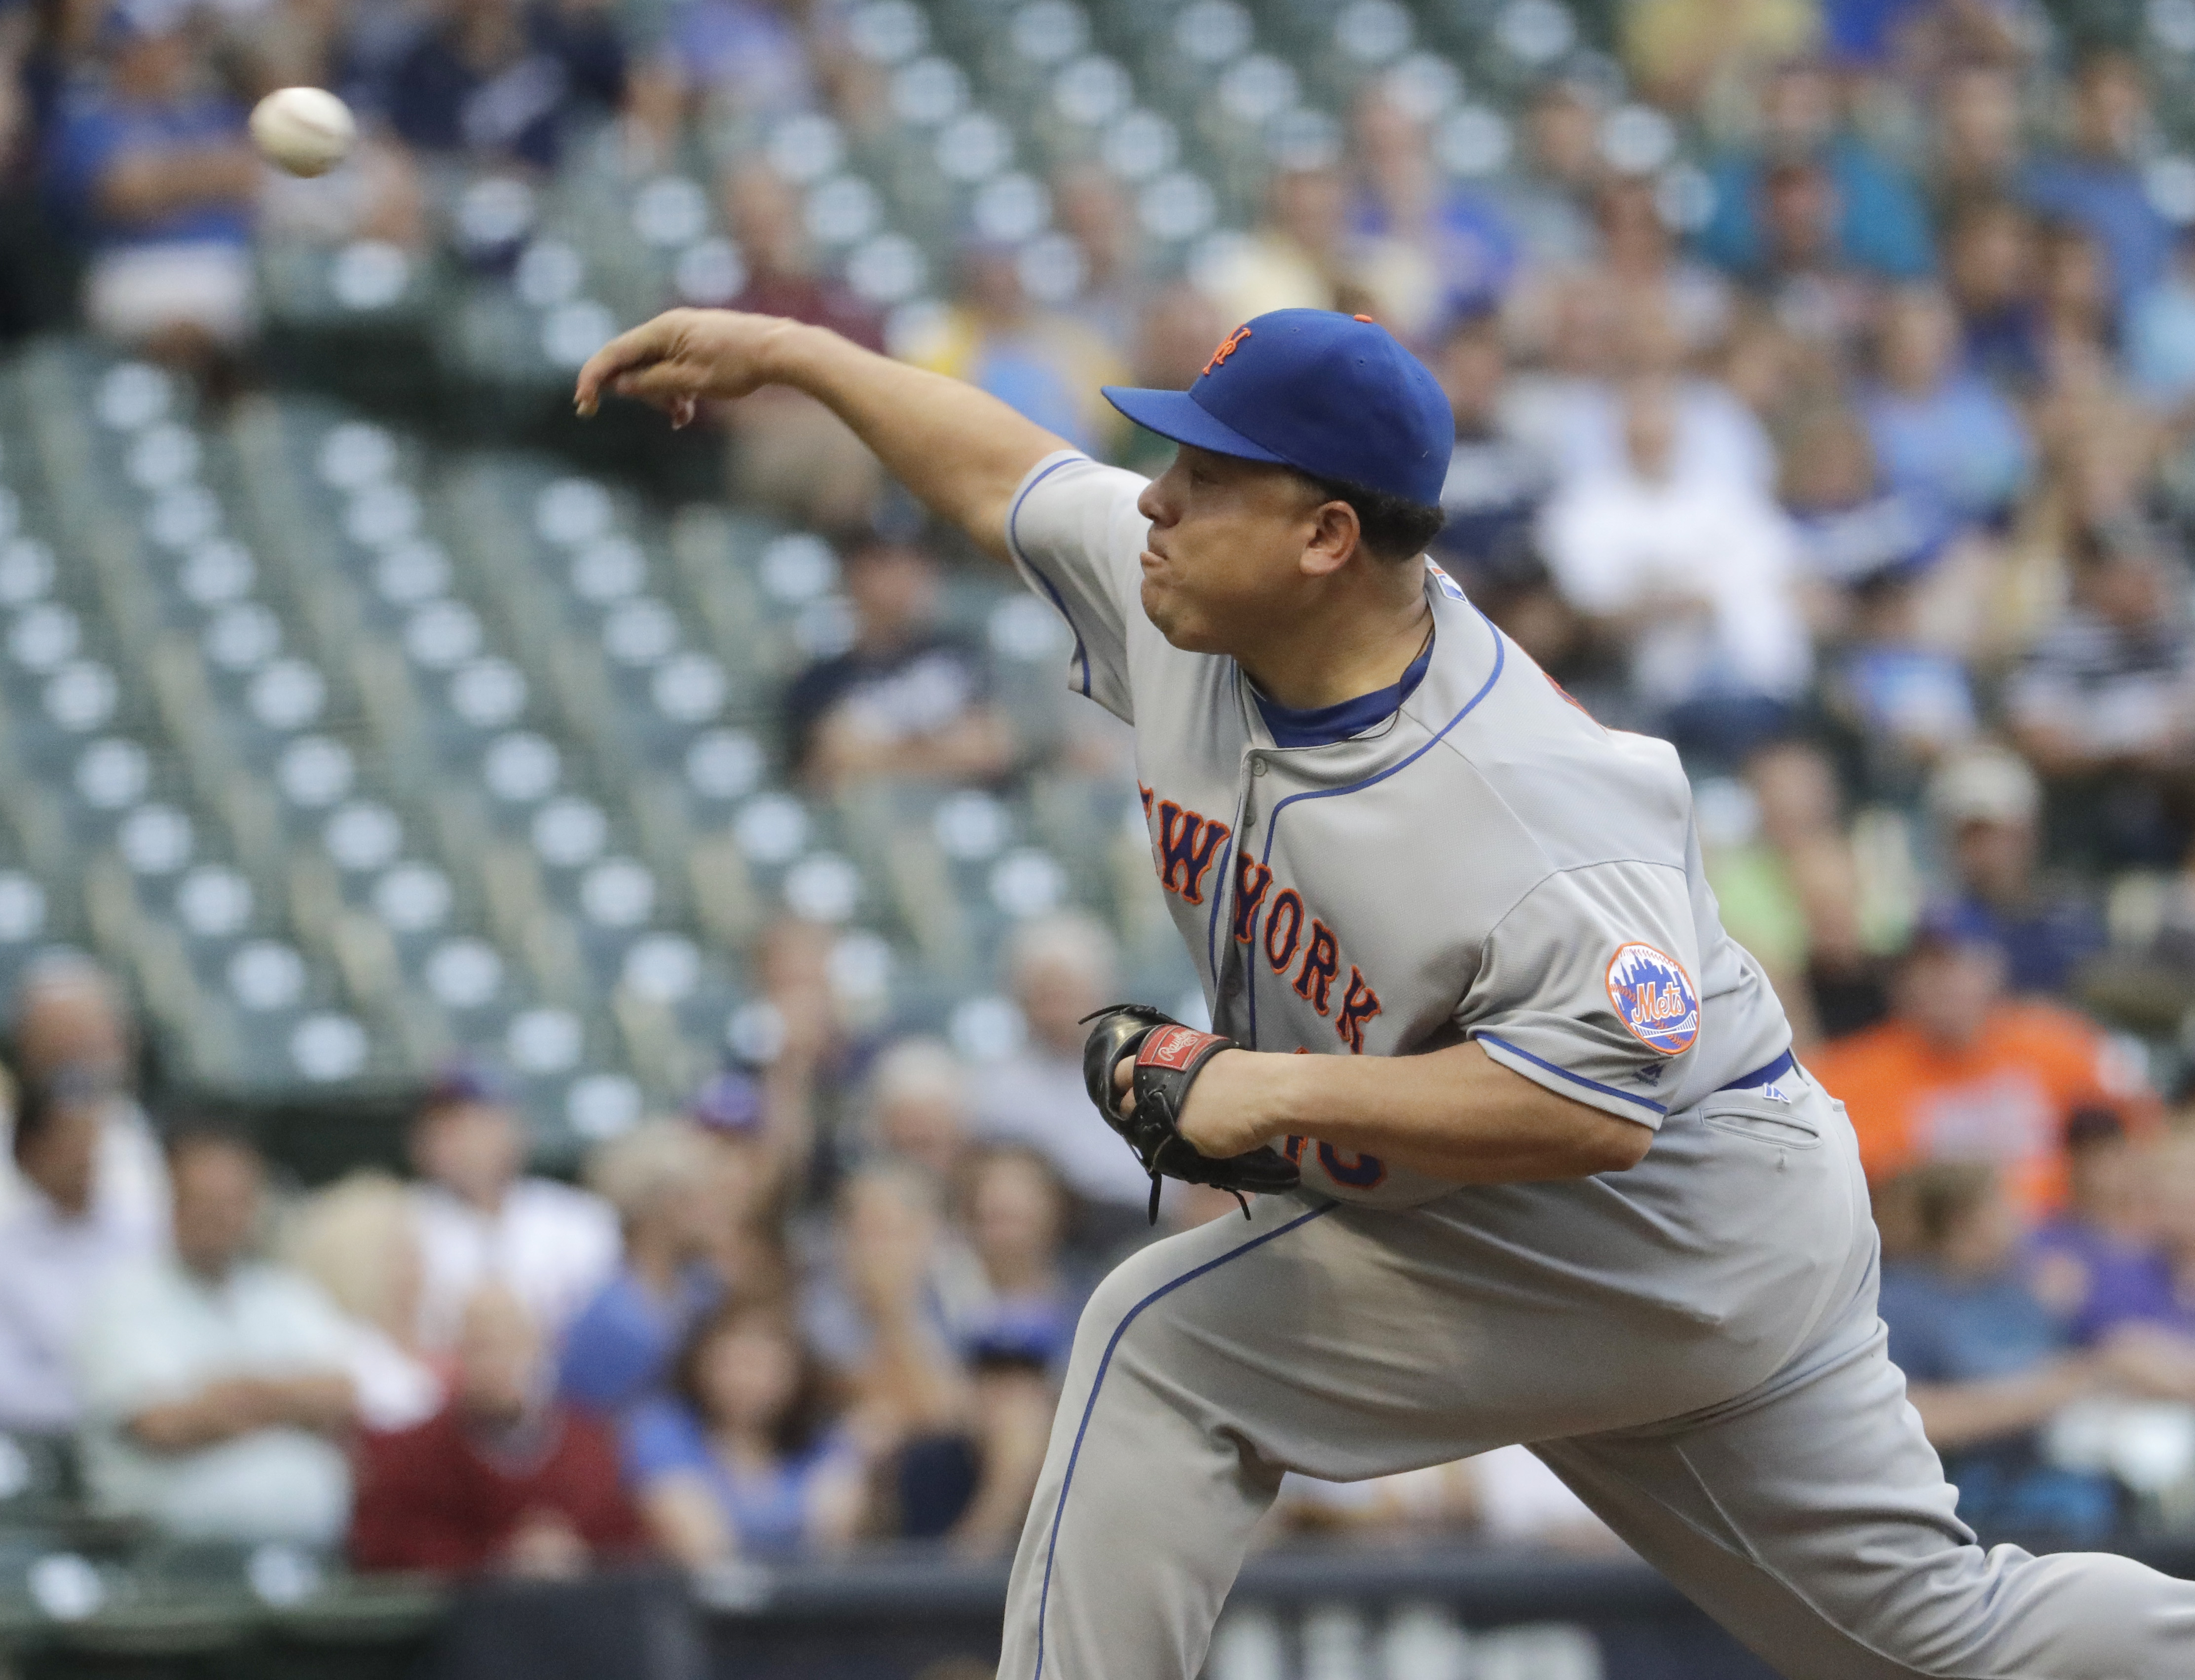 New York Mets starting pitcher Bartolo Colon throws during the first inning of a baseball game against the Milwaukee Brewers Thursday, June 9, 2016, in Milwaukee. (AP Photo/Morry Gash)